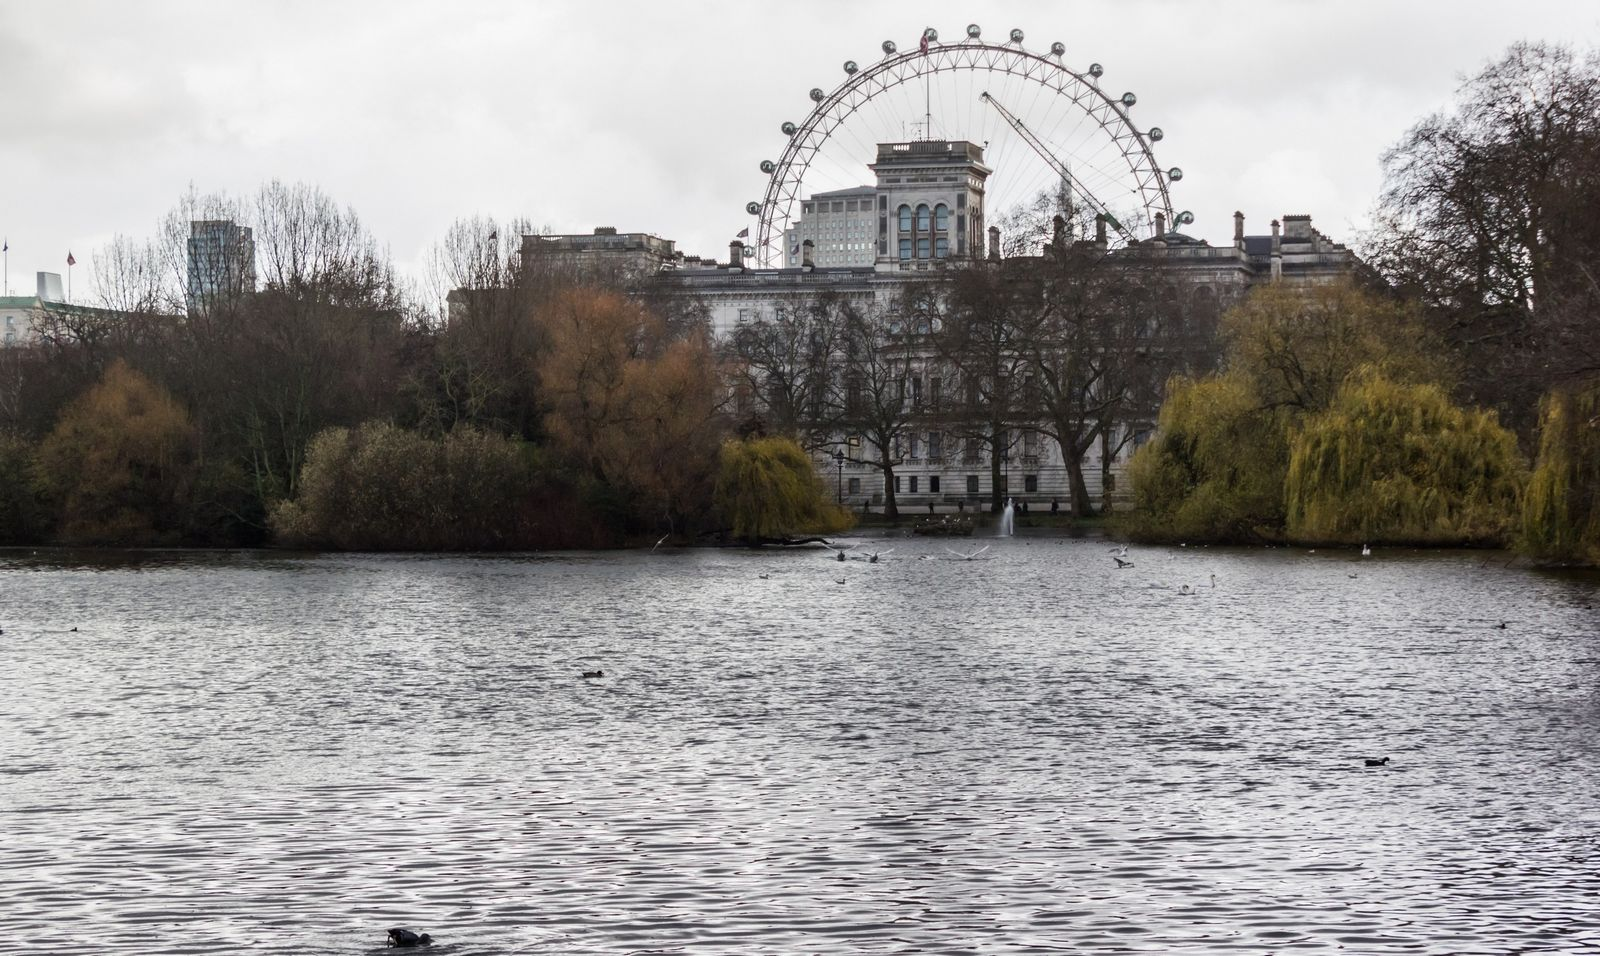 El London Eye desde el lago de St. James's Park